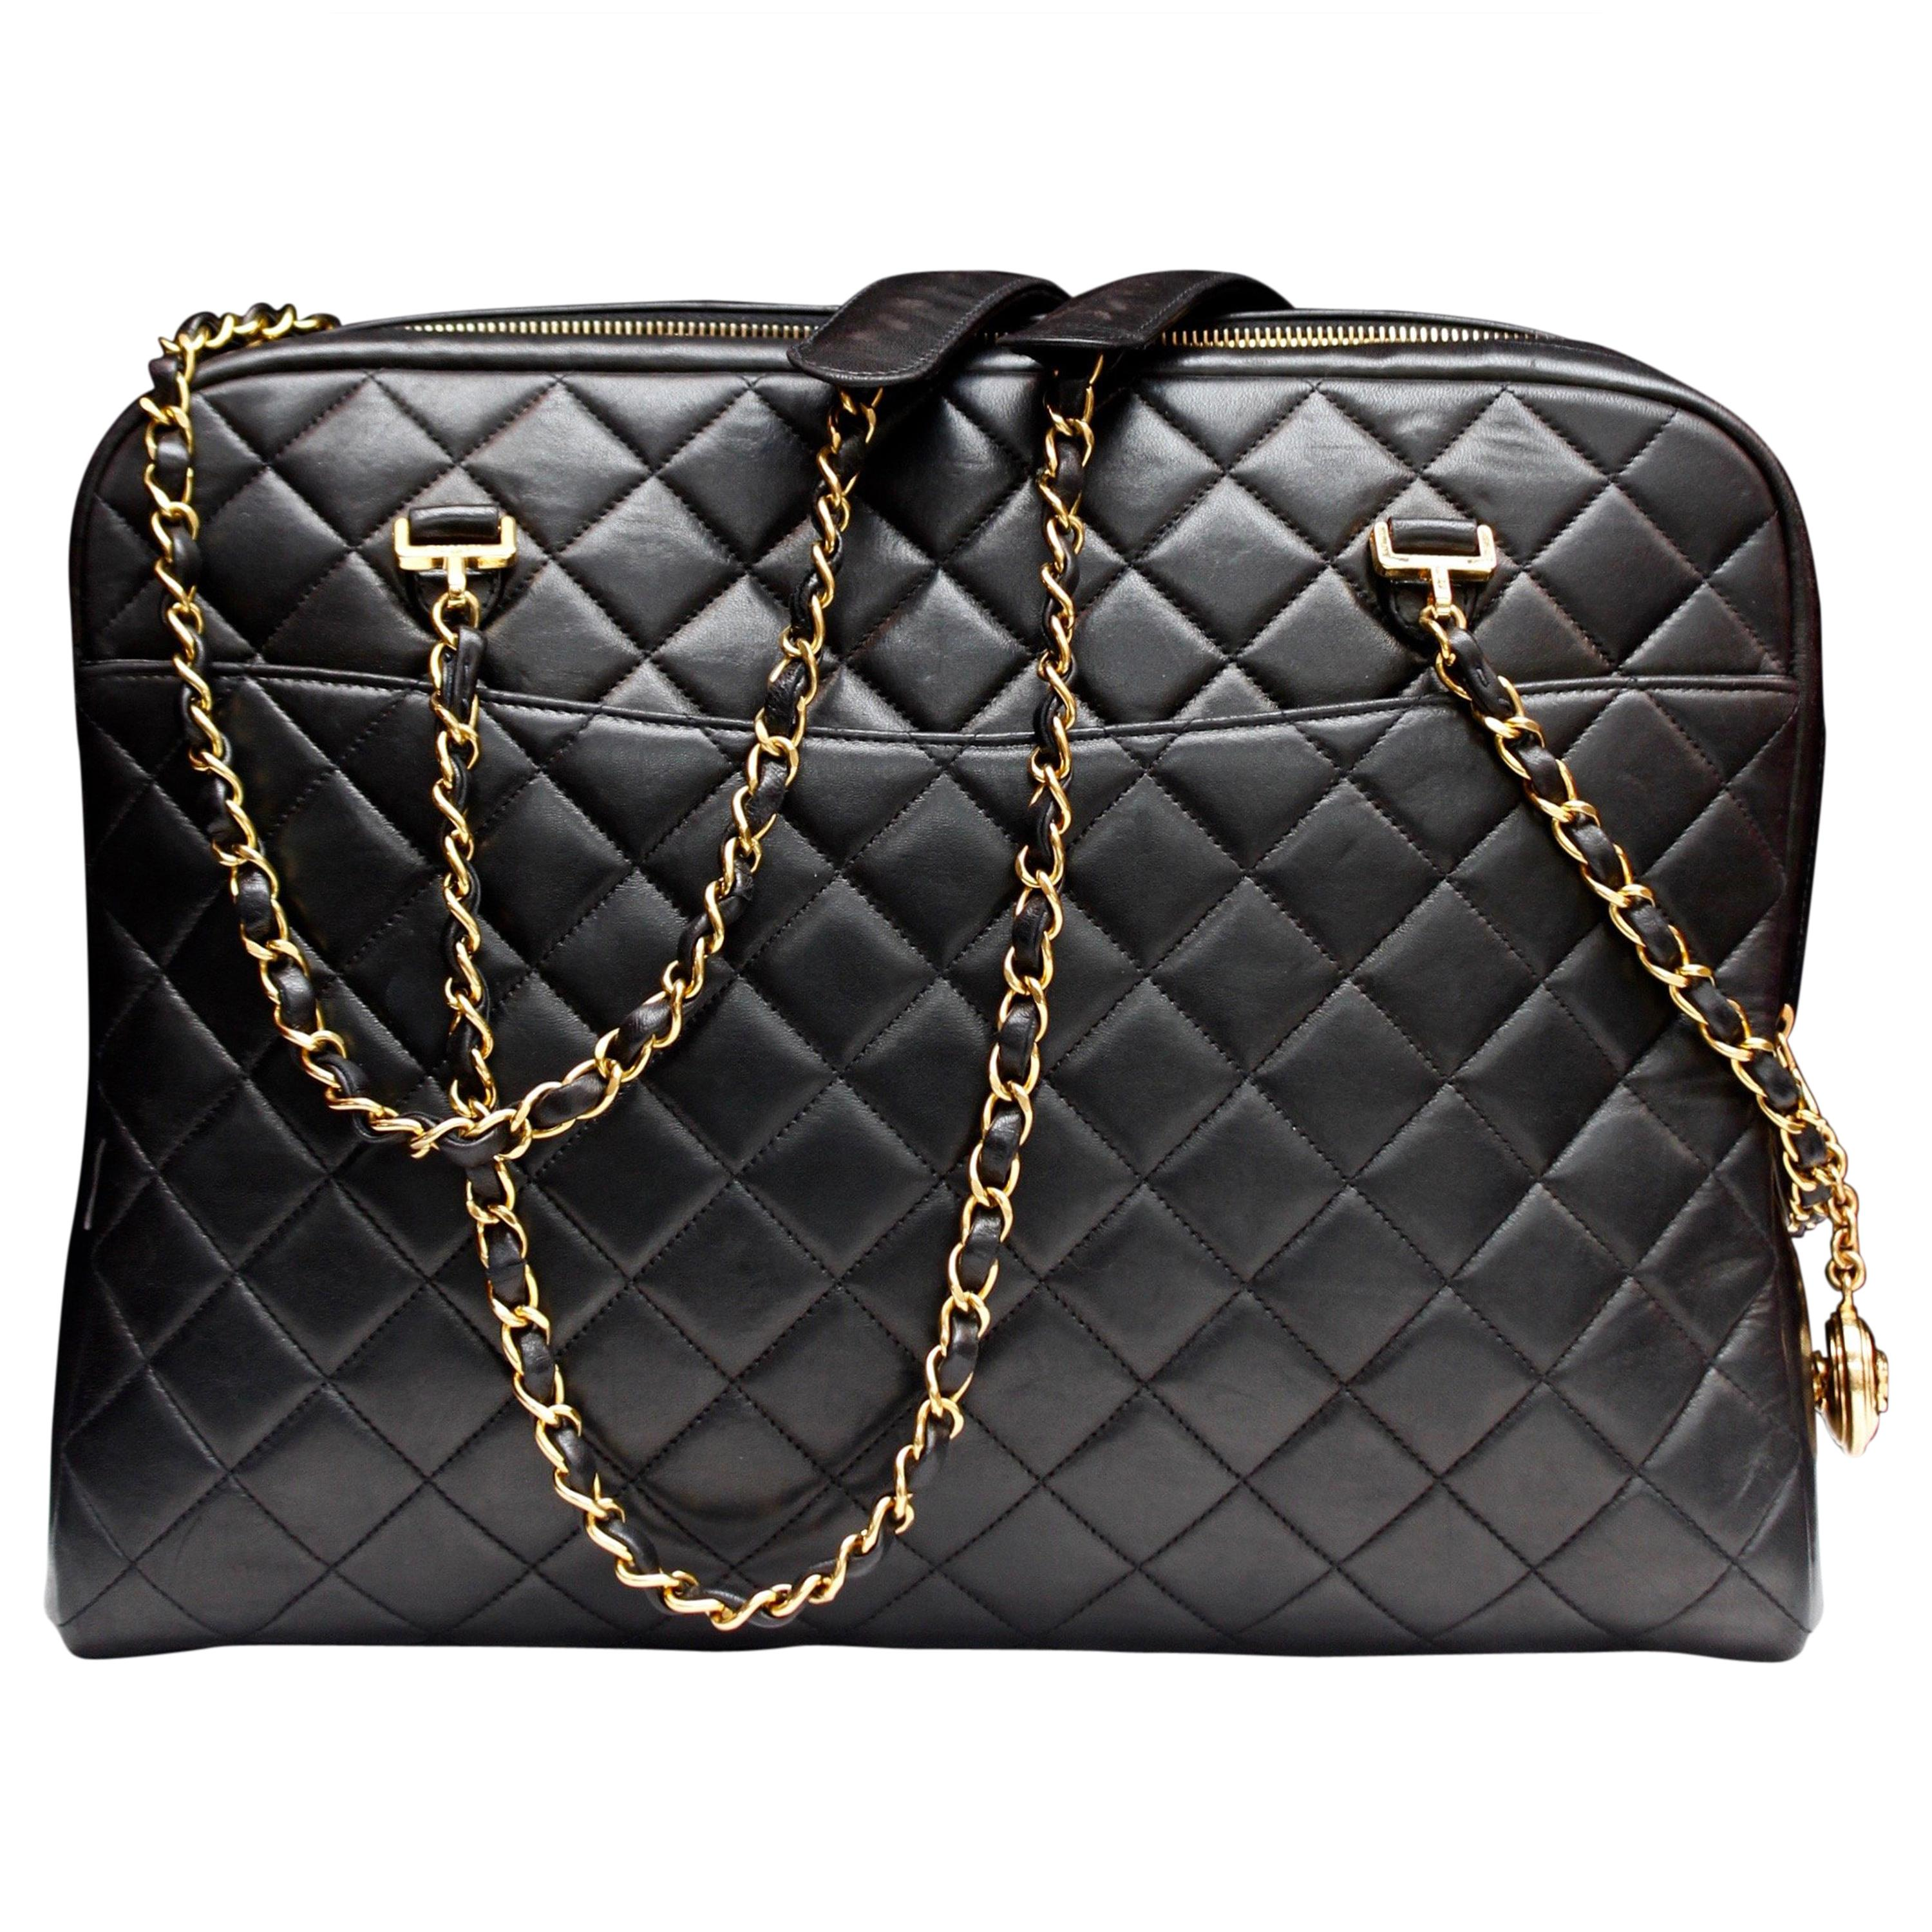 f742699dce50 Chanel gorgeous camera bag in black quilted lambskin For Sale at 1stdibs